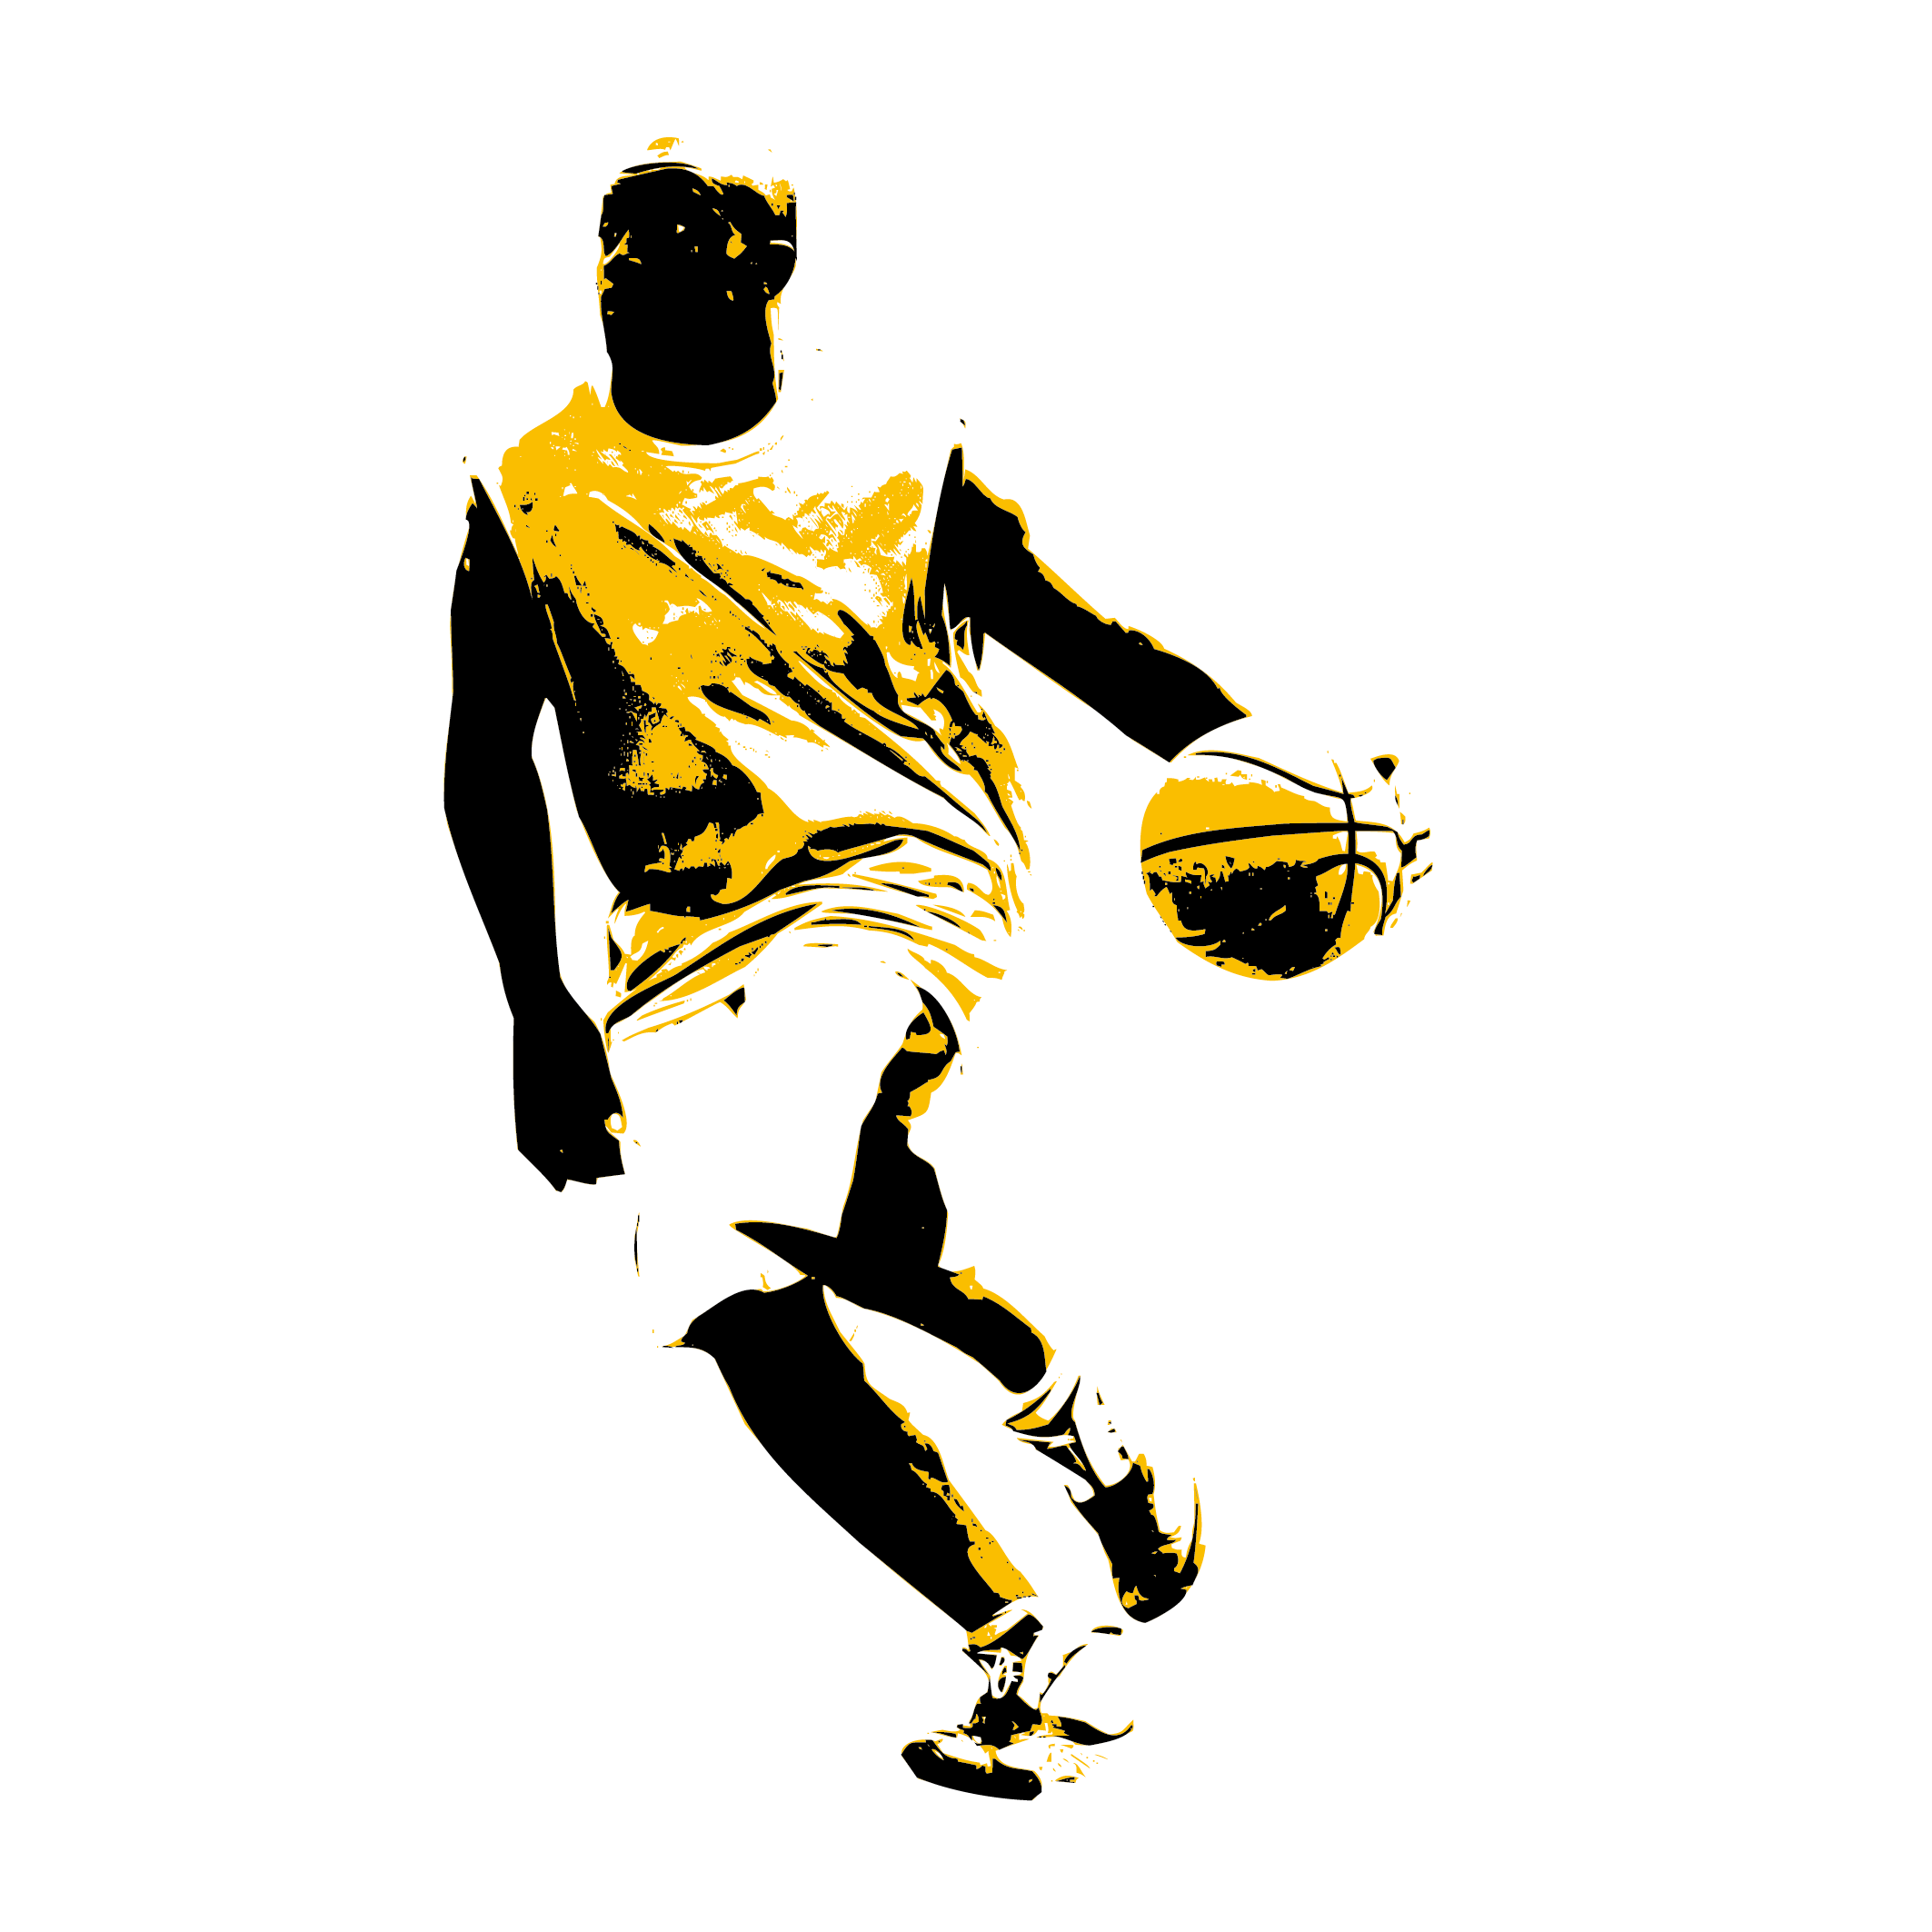 Basketball player dunking clipart banner black and white Basketball Slam dunk Sport Clip art - Man dribbling 2126*2126 ... banner black and white